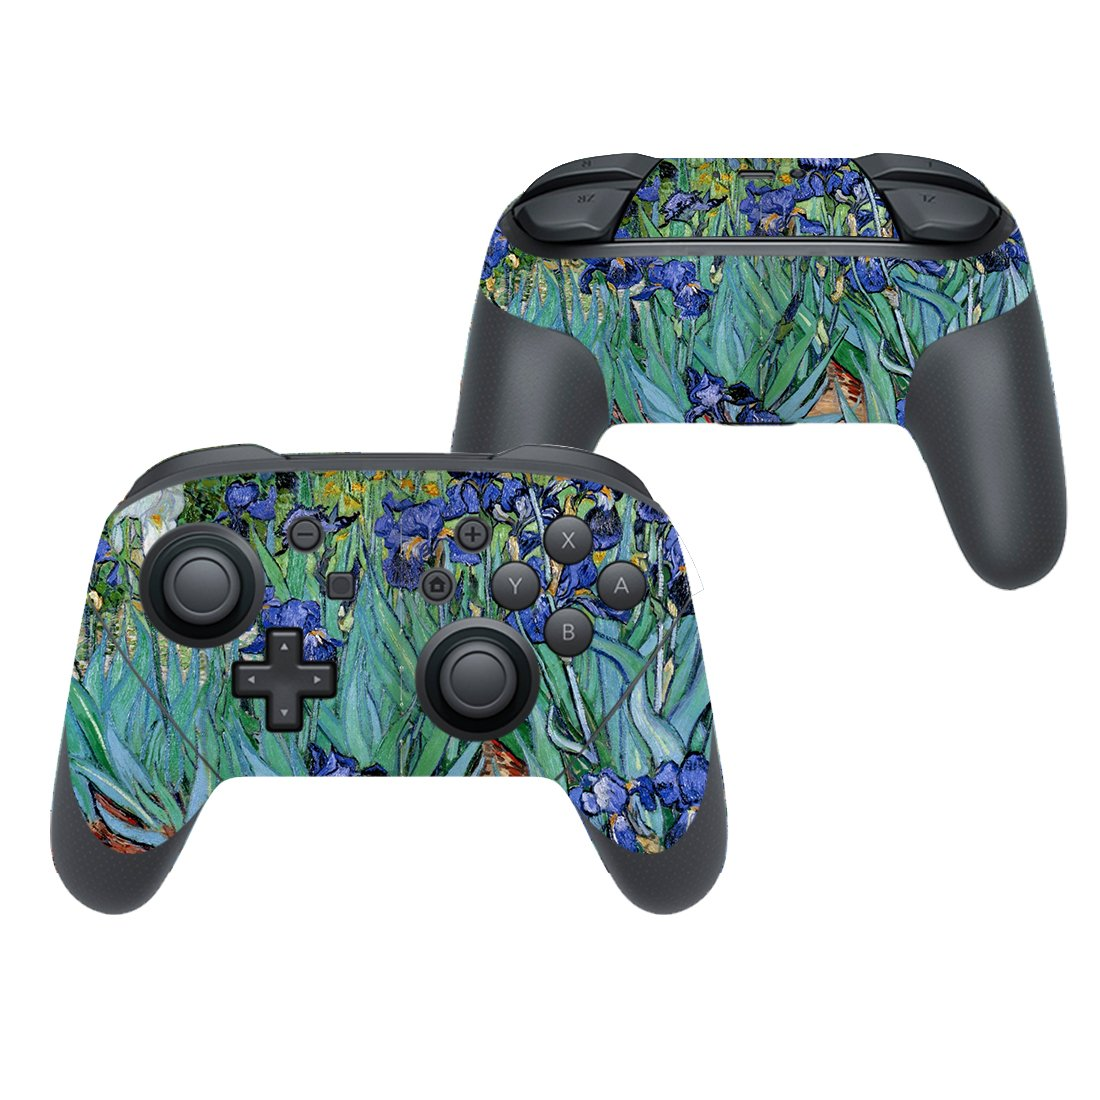 Painted floral texture decal for Nintendo switch controller pro sticker skin